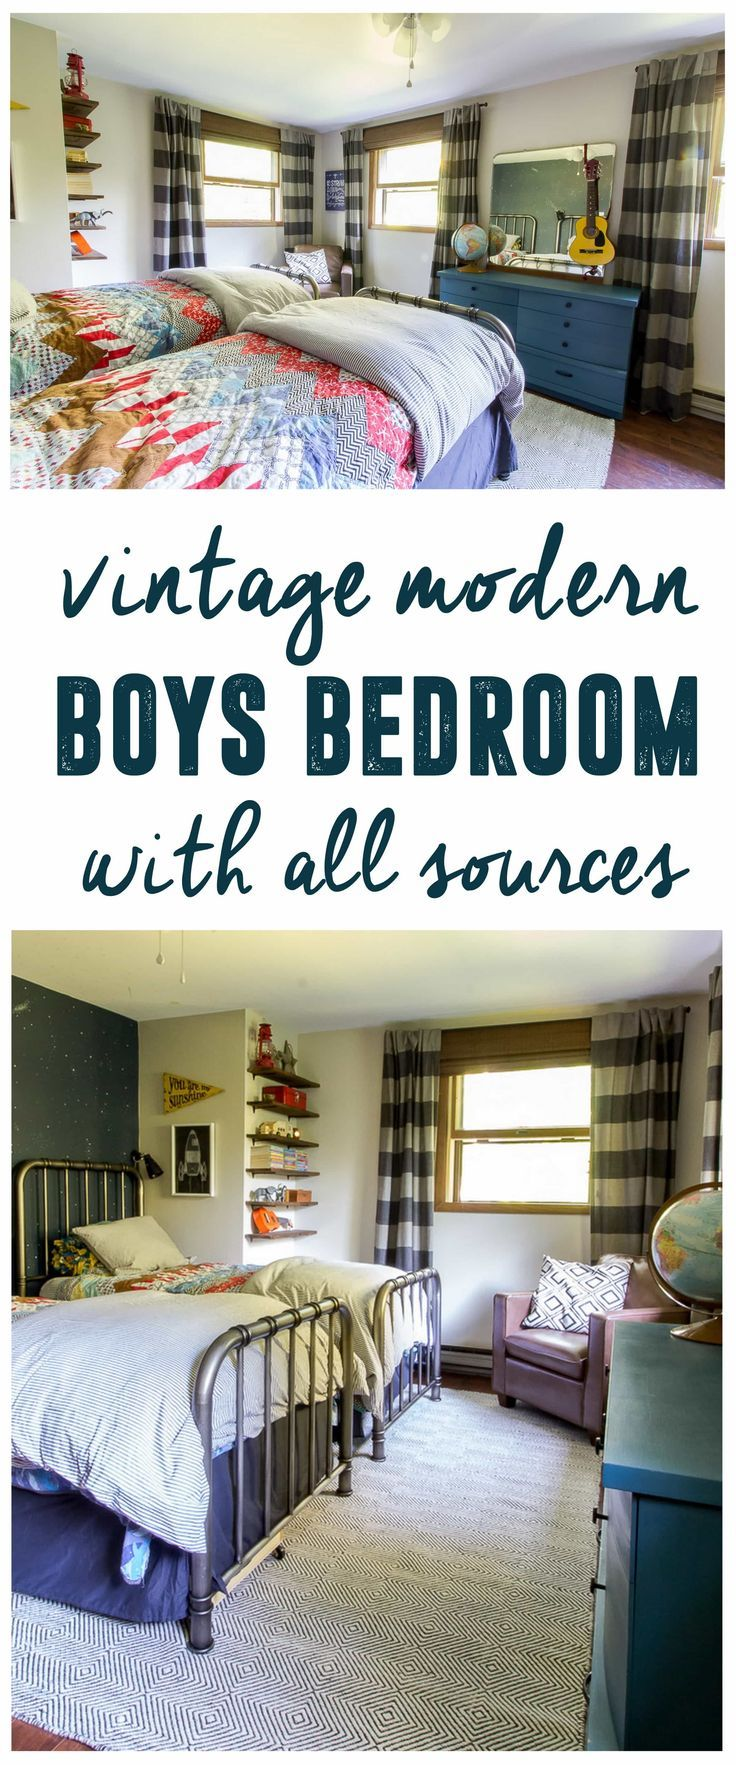 modern vintage bedroom ideas%0A Modern Boys Bedroom